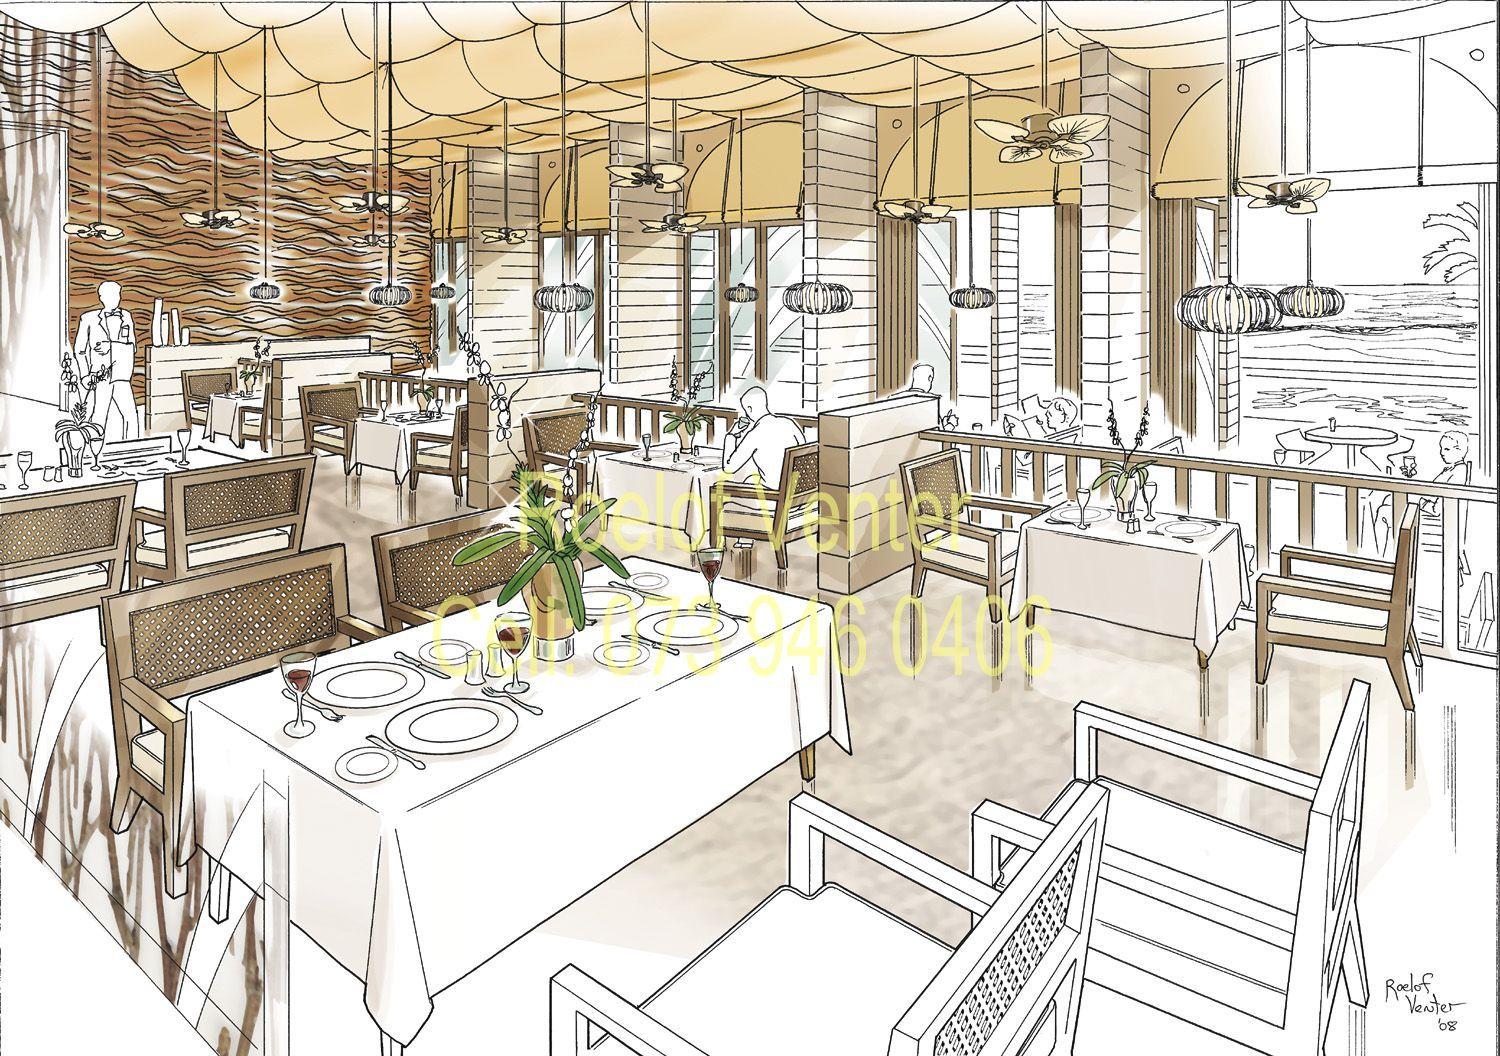 Restaurant Drawing At Getdrawings Com Free For Personal